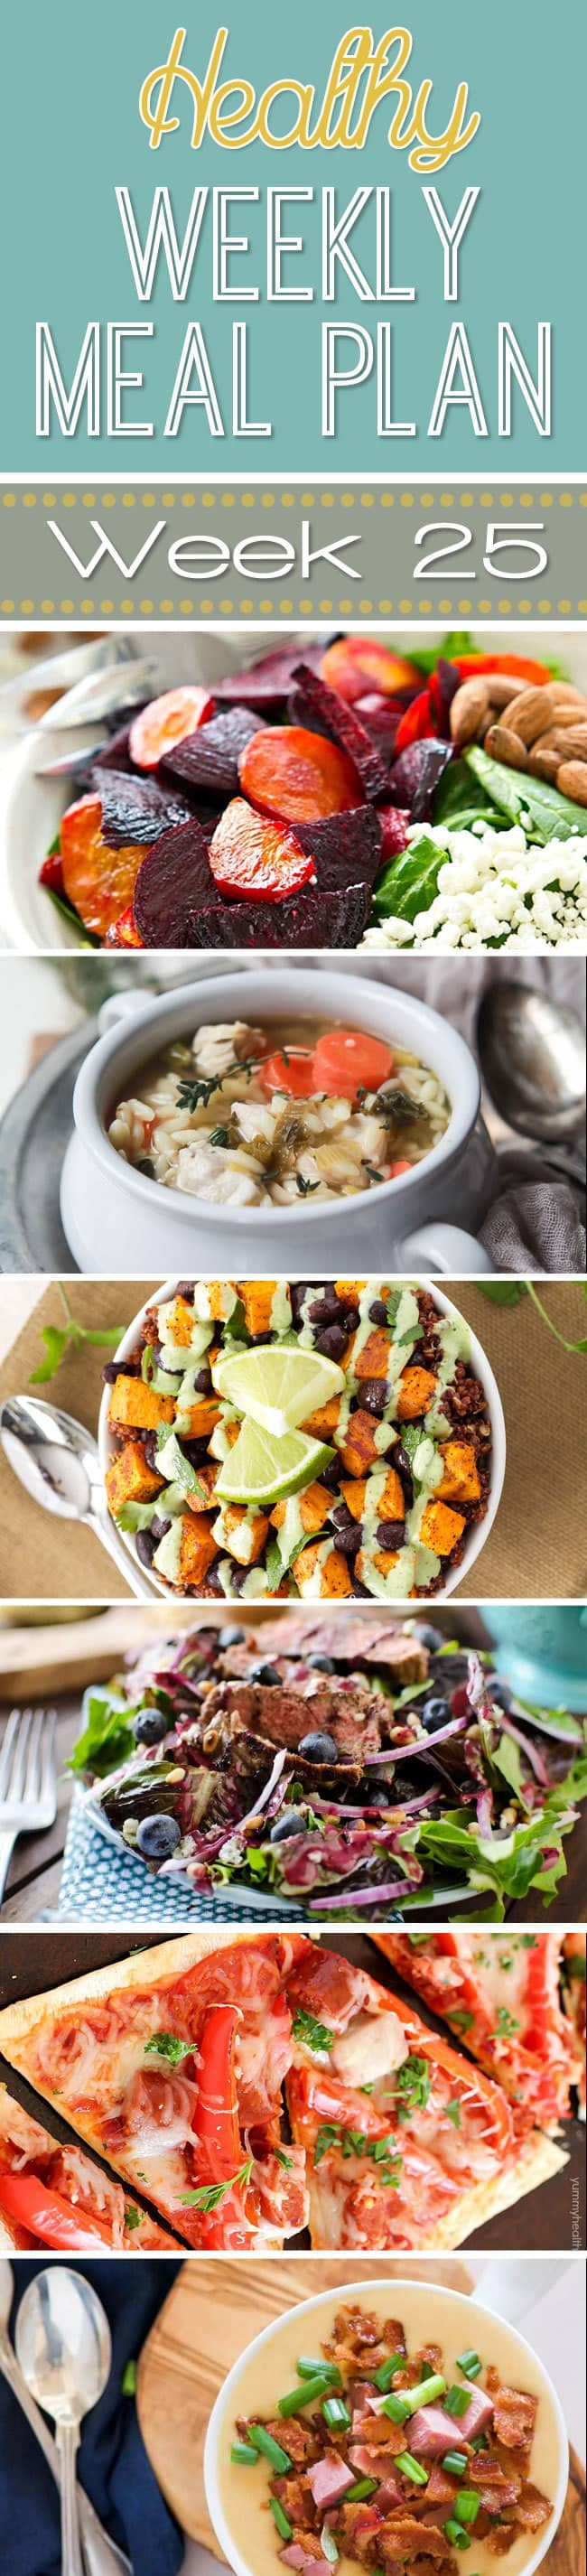 Healthy Weekly Meal Plan #25 is probably one of my favorite yet! Get a new dinner recipe every day plus a breakfast, lunch, side dish and even a healthy dessert recipe thrown in. You can eat healthy by using our healthy weekly menu plan!